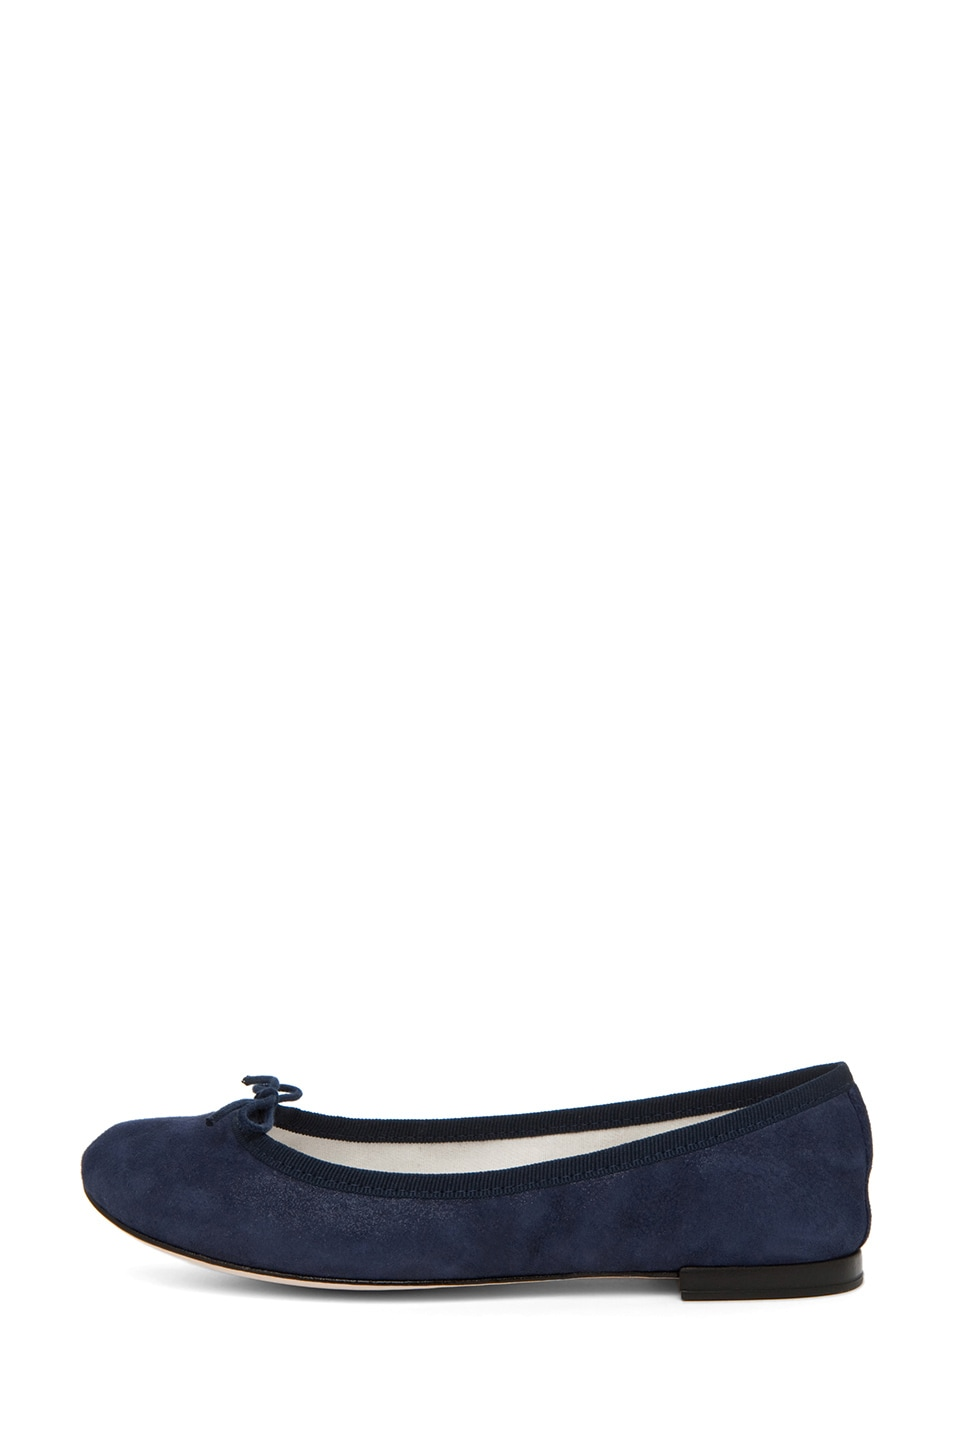 Image 1 of Repetto Suede Flat in Navy